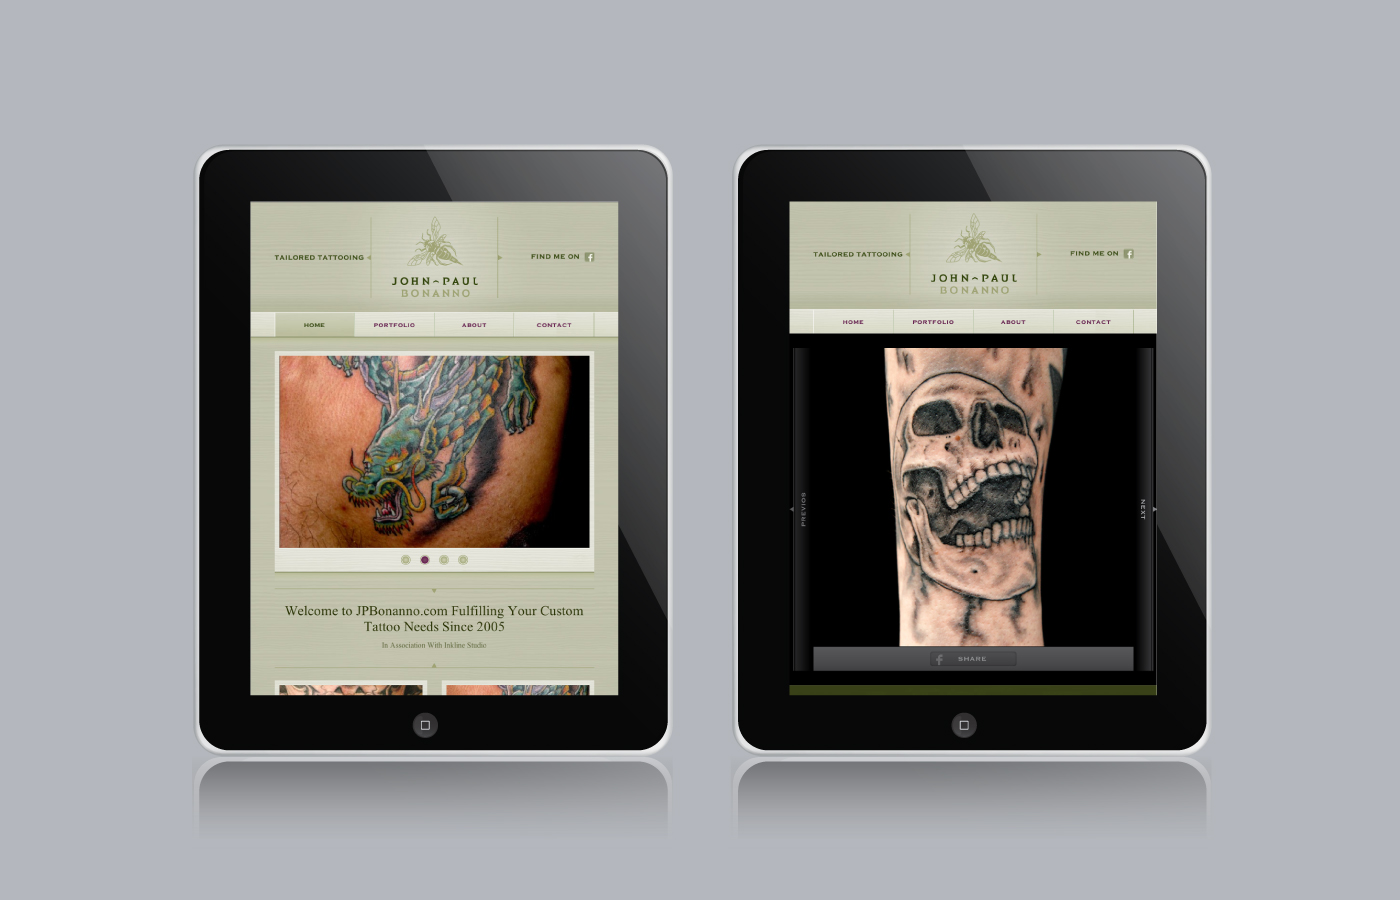 Responsive website for John-Paul Bonanno Tailored Tattooing by Madonna+Child